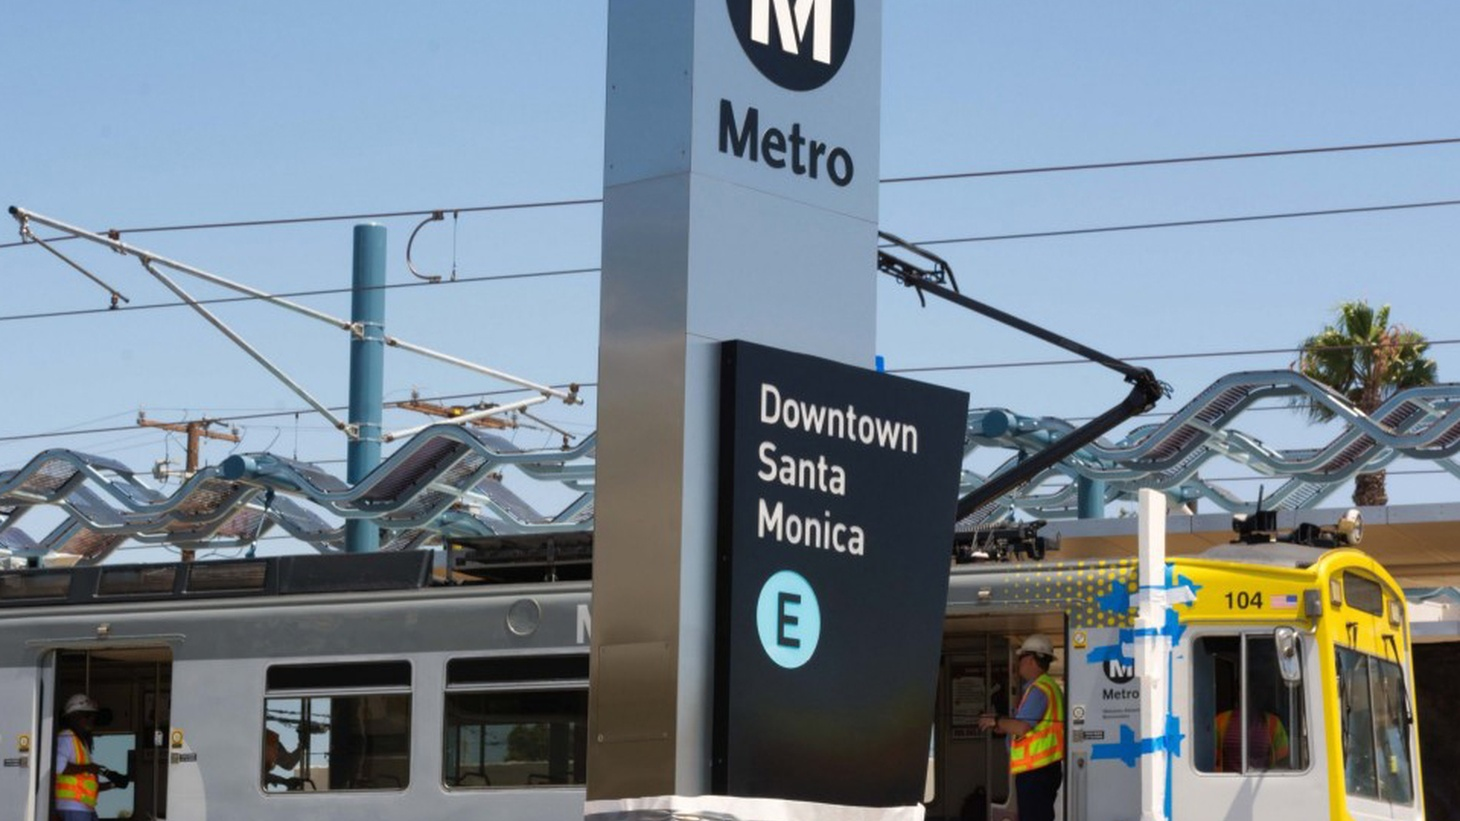 On June 23, the Metro Board is expected to approve a ballot initiative that's being called Measure R2, for a half-cent sales tax to be placed on the November ballot.